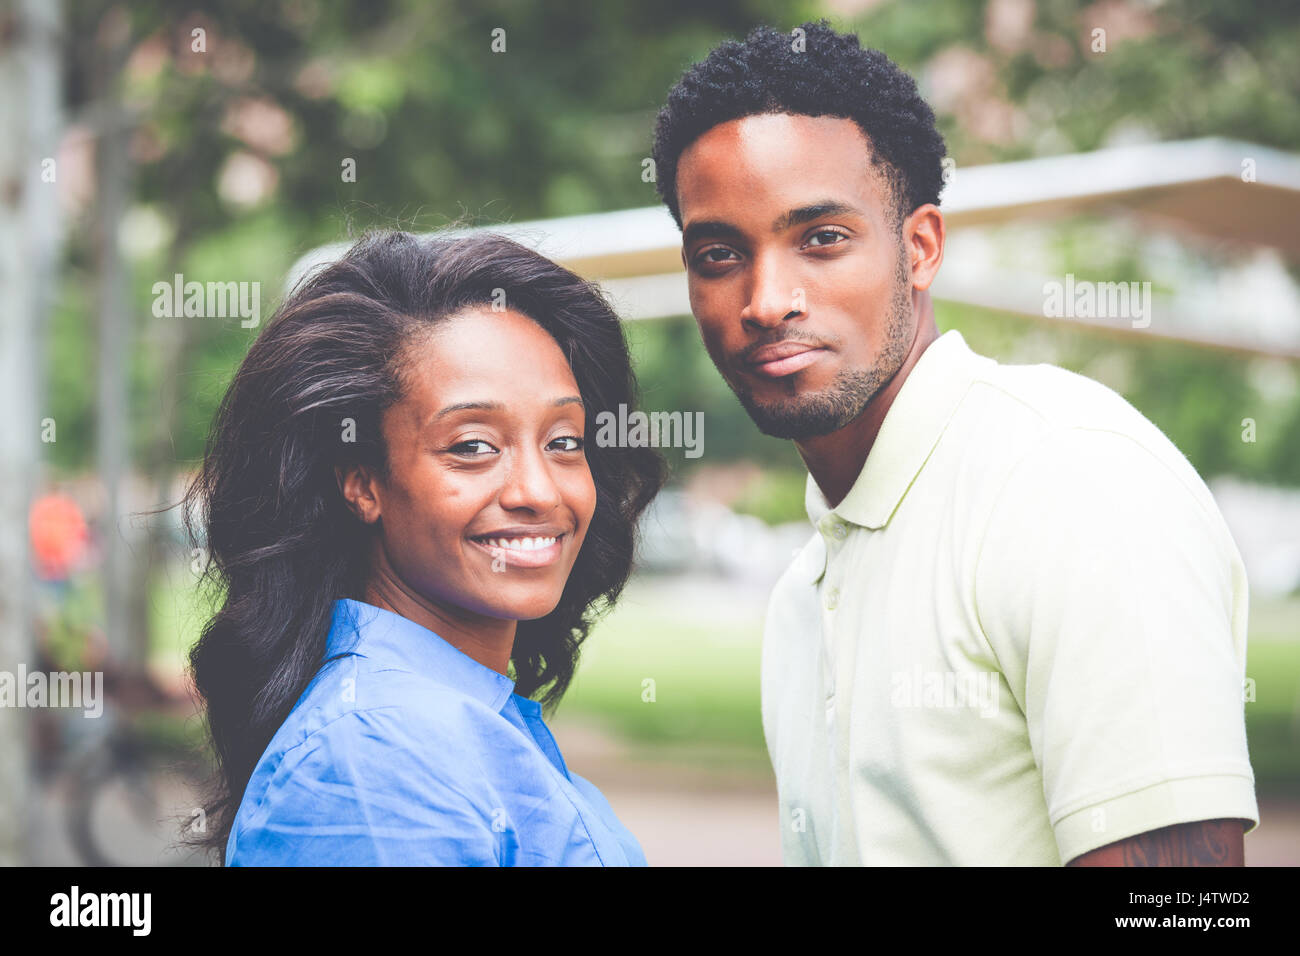 Closeup portrait of a young couple, guy in yellow shirt holding woman with blue shirt, happy moments, positive human - Stock Image